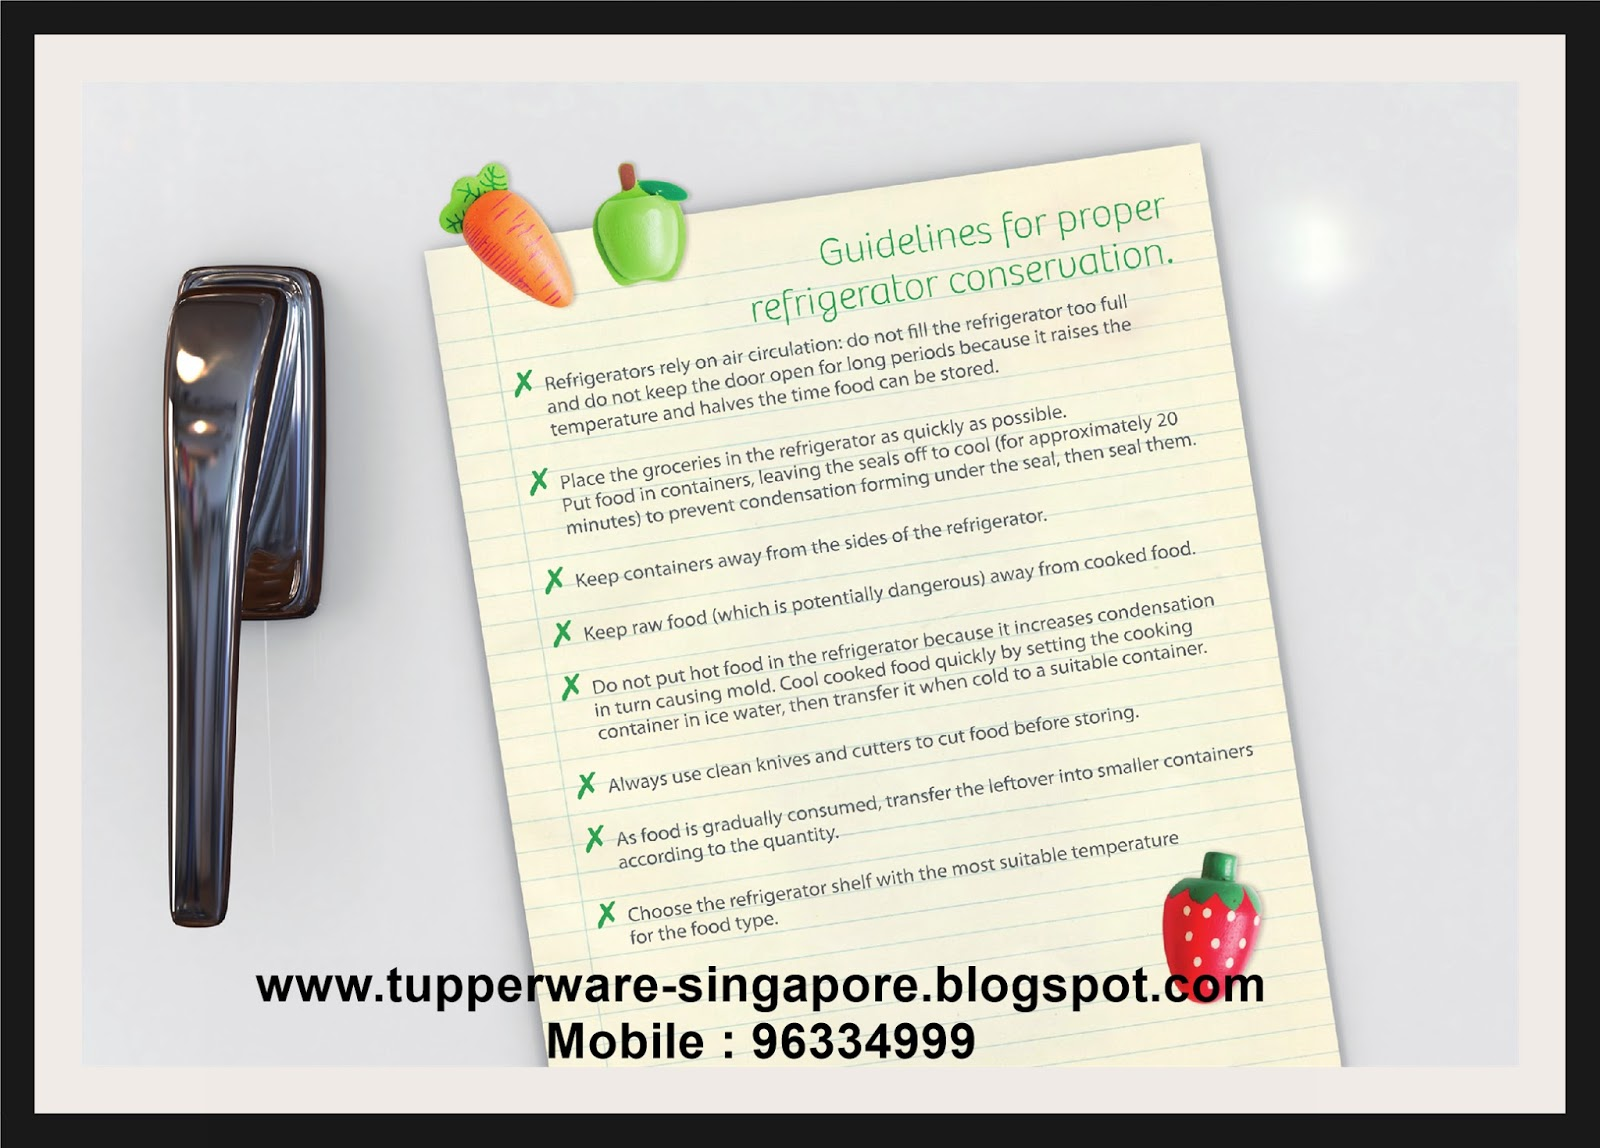 Buy Tupperware in Singapore: Food Conservation 2 by Tupperware